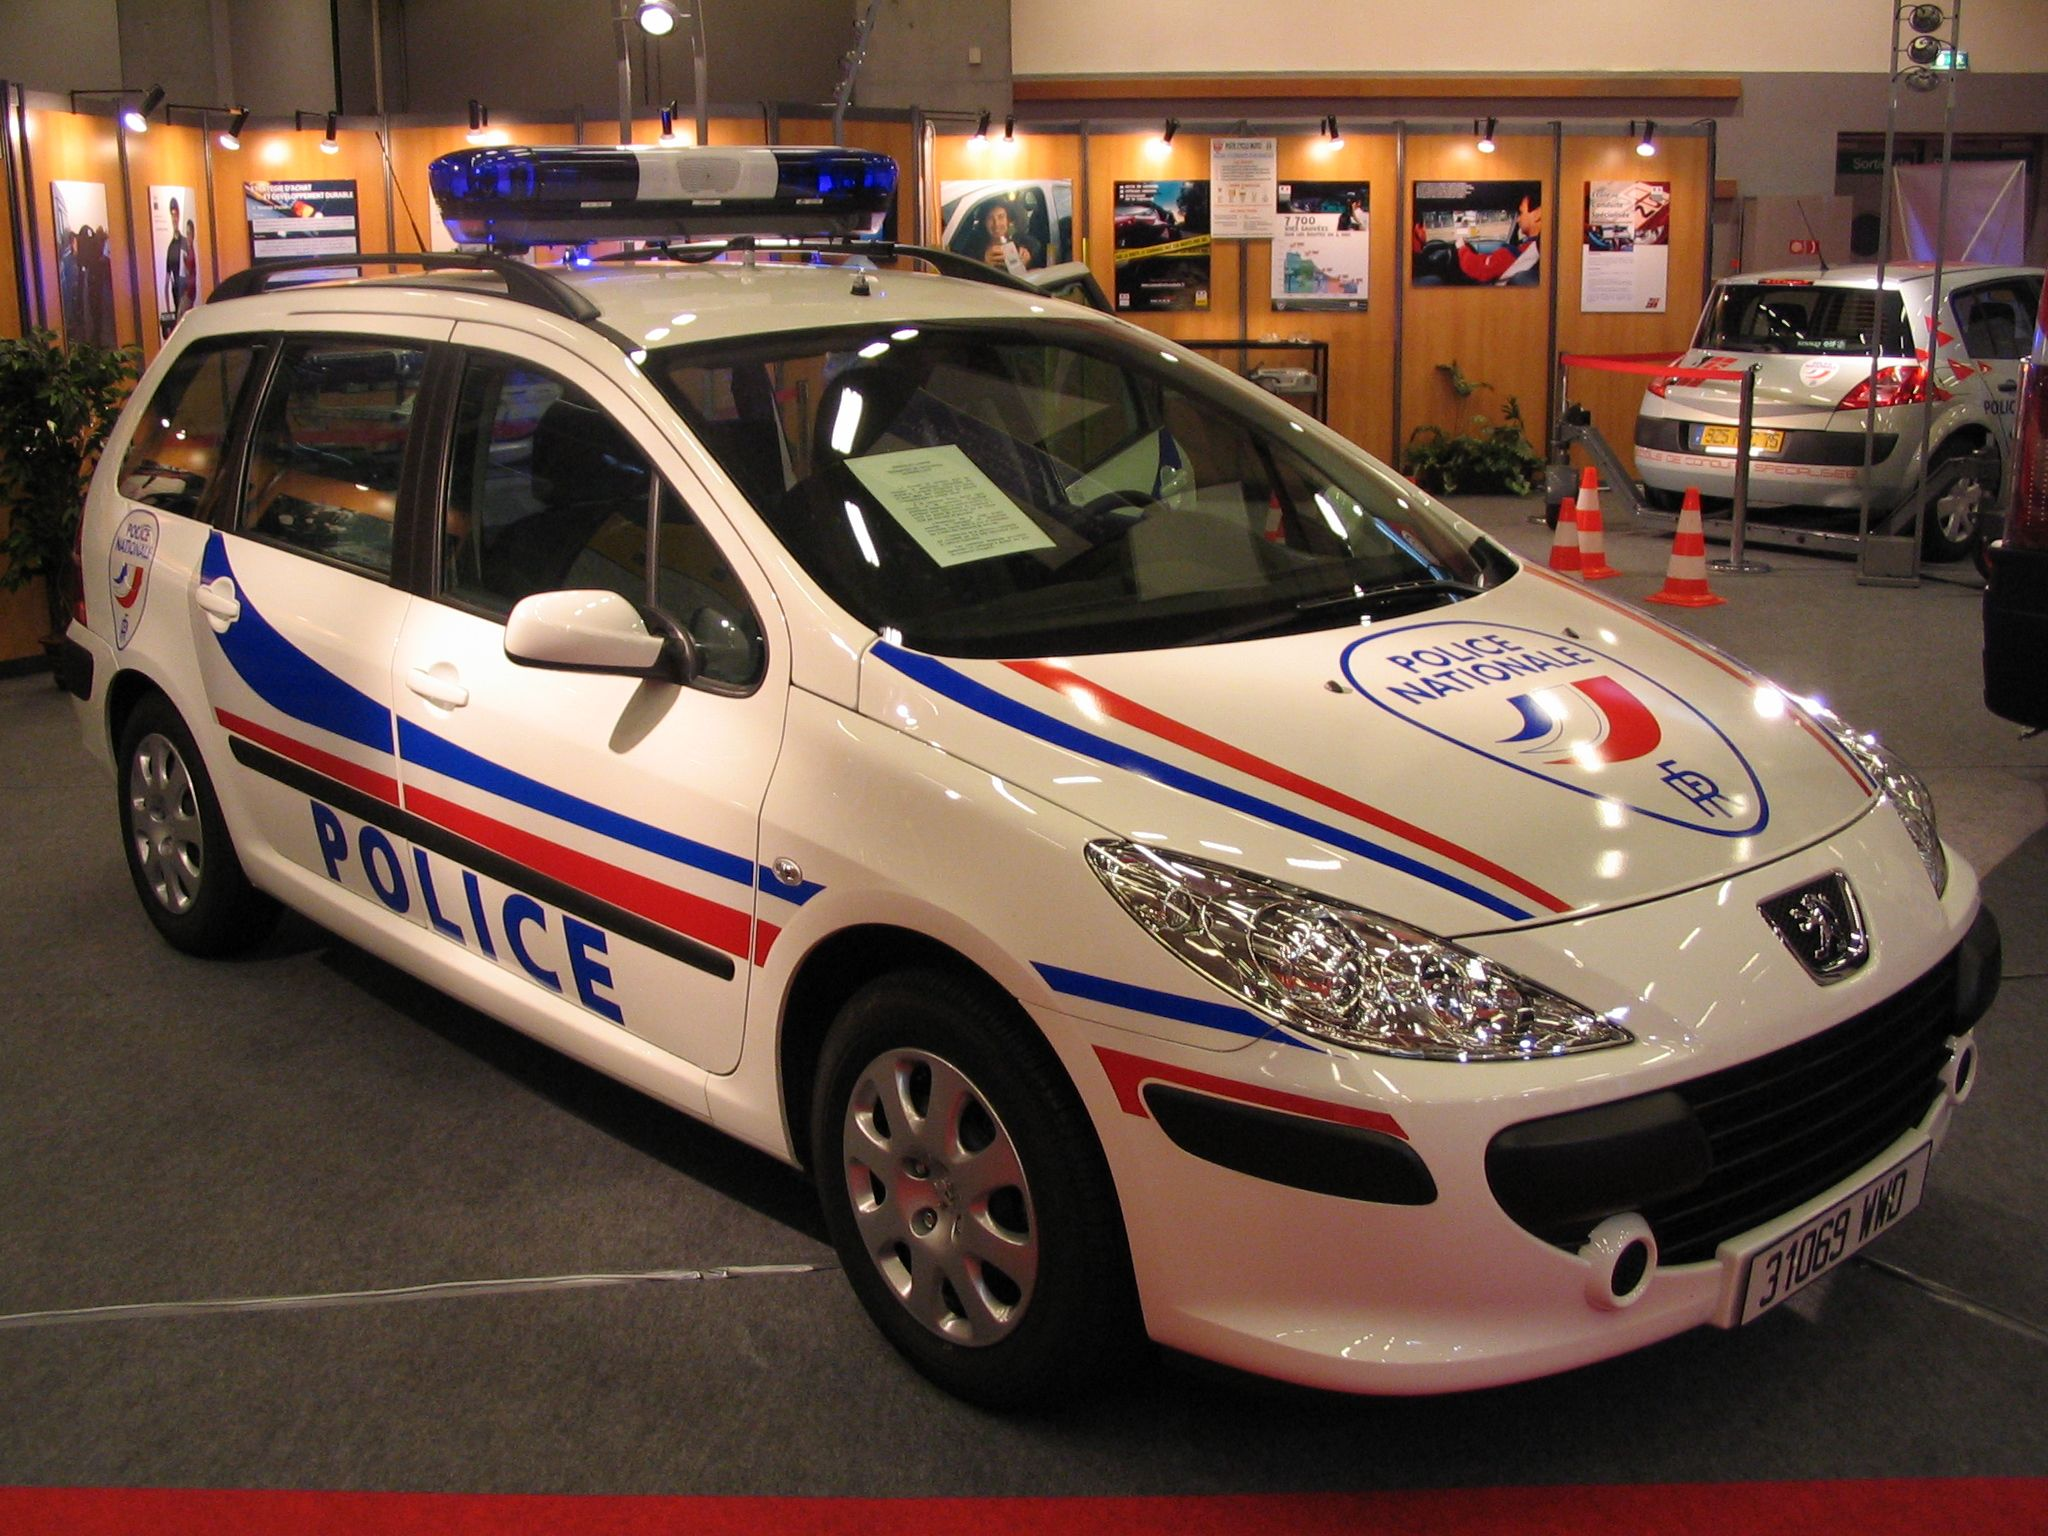 Police Nationale Paris France Paris Police Cars French